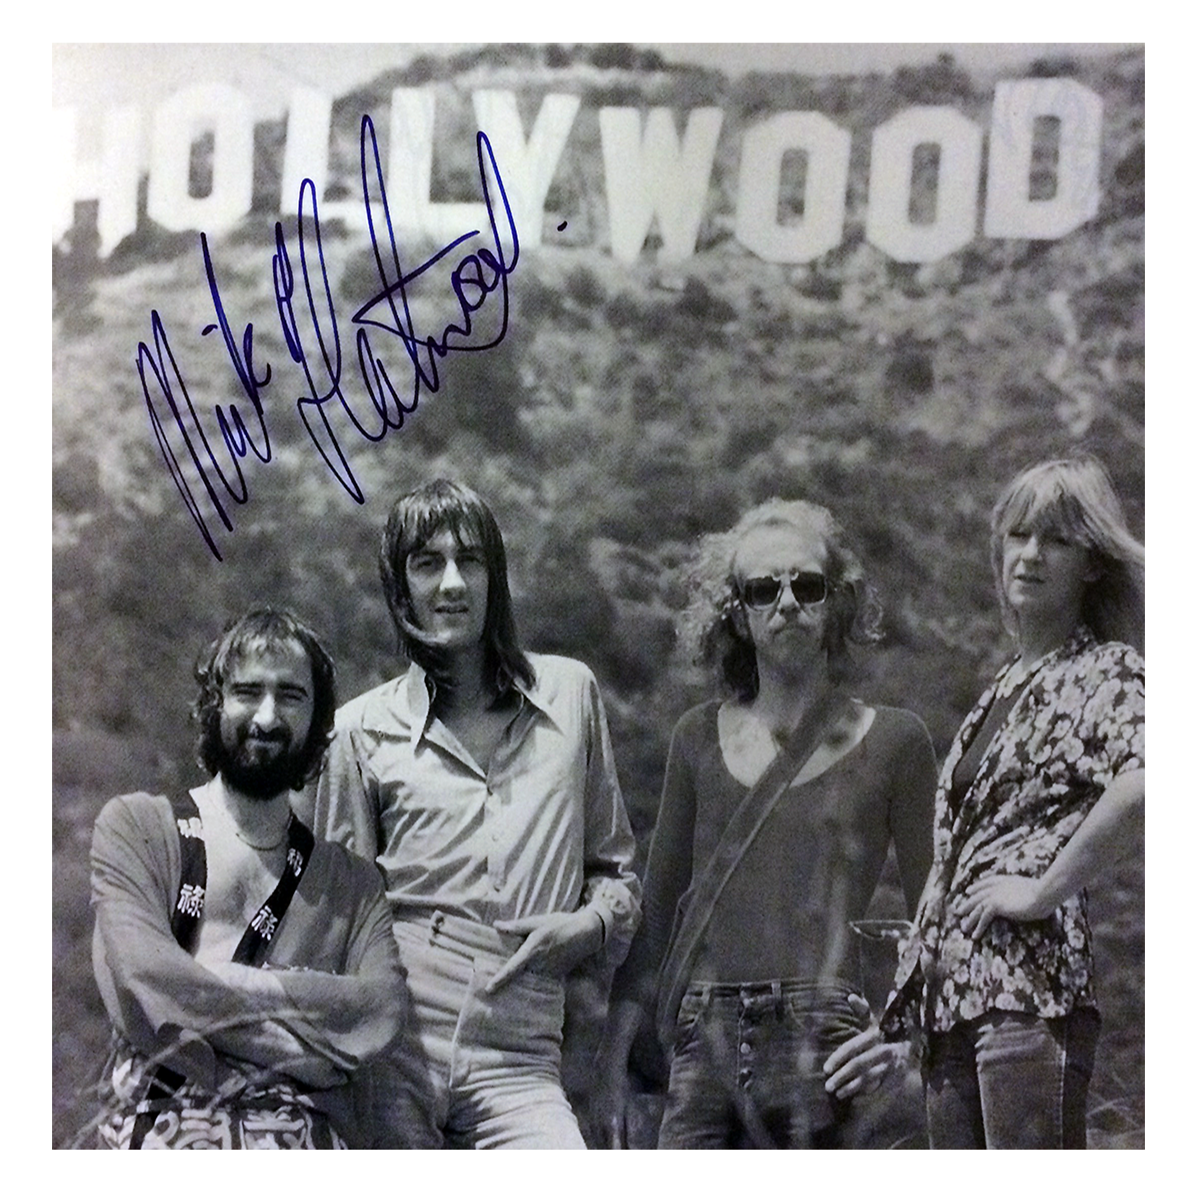 Fleetwood Mac Photo #2